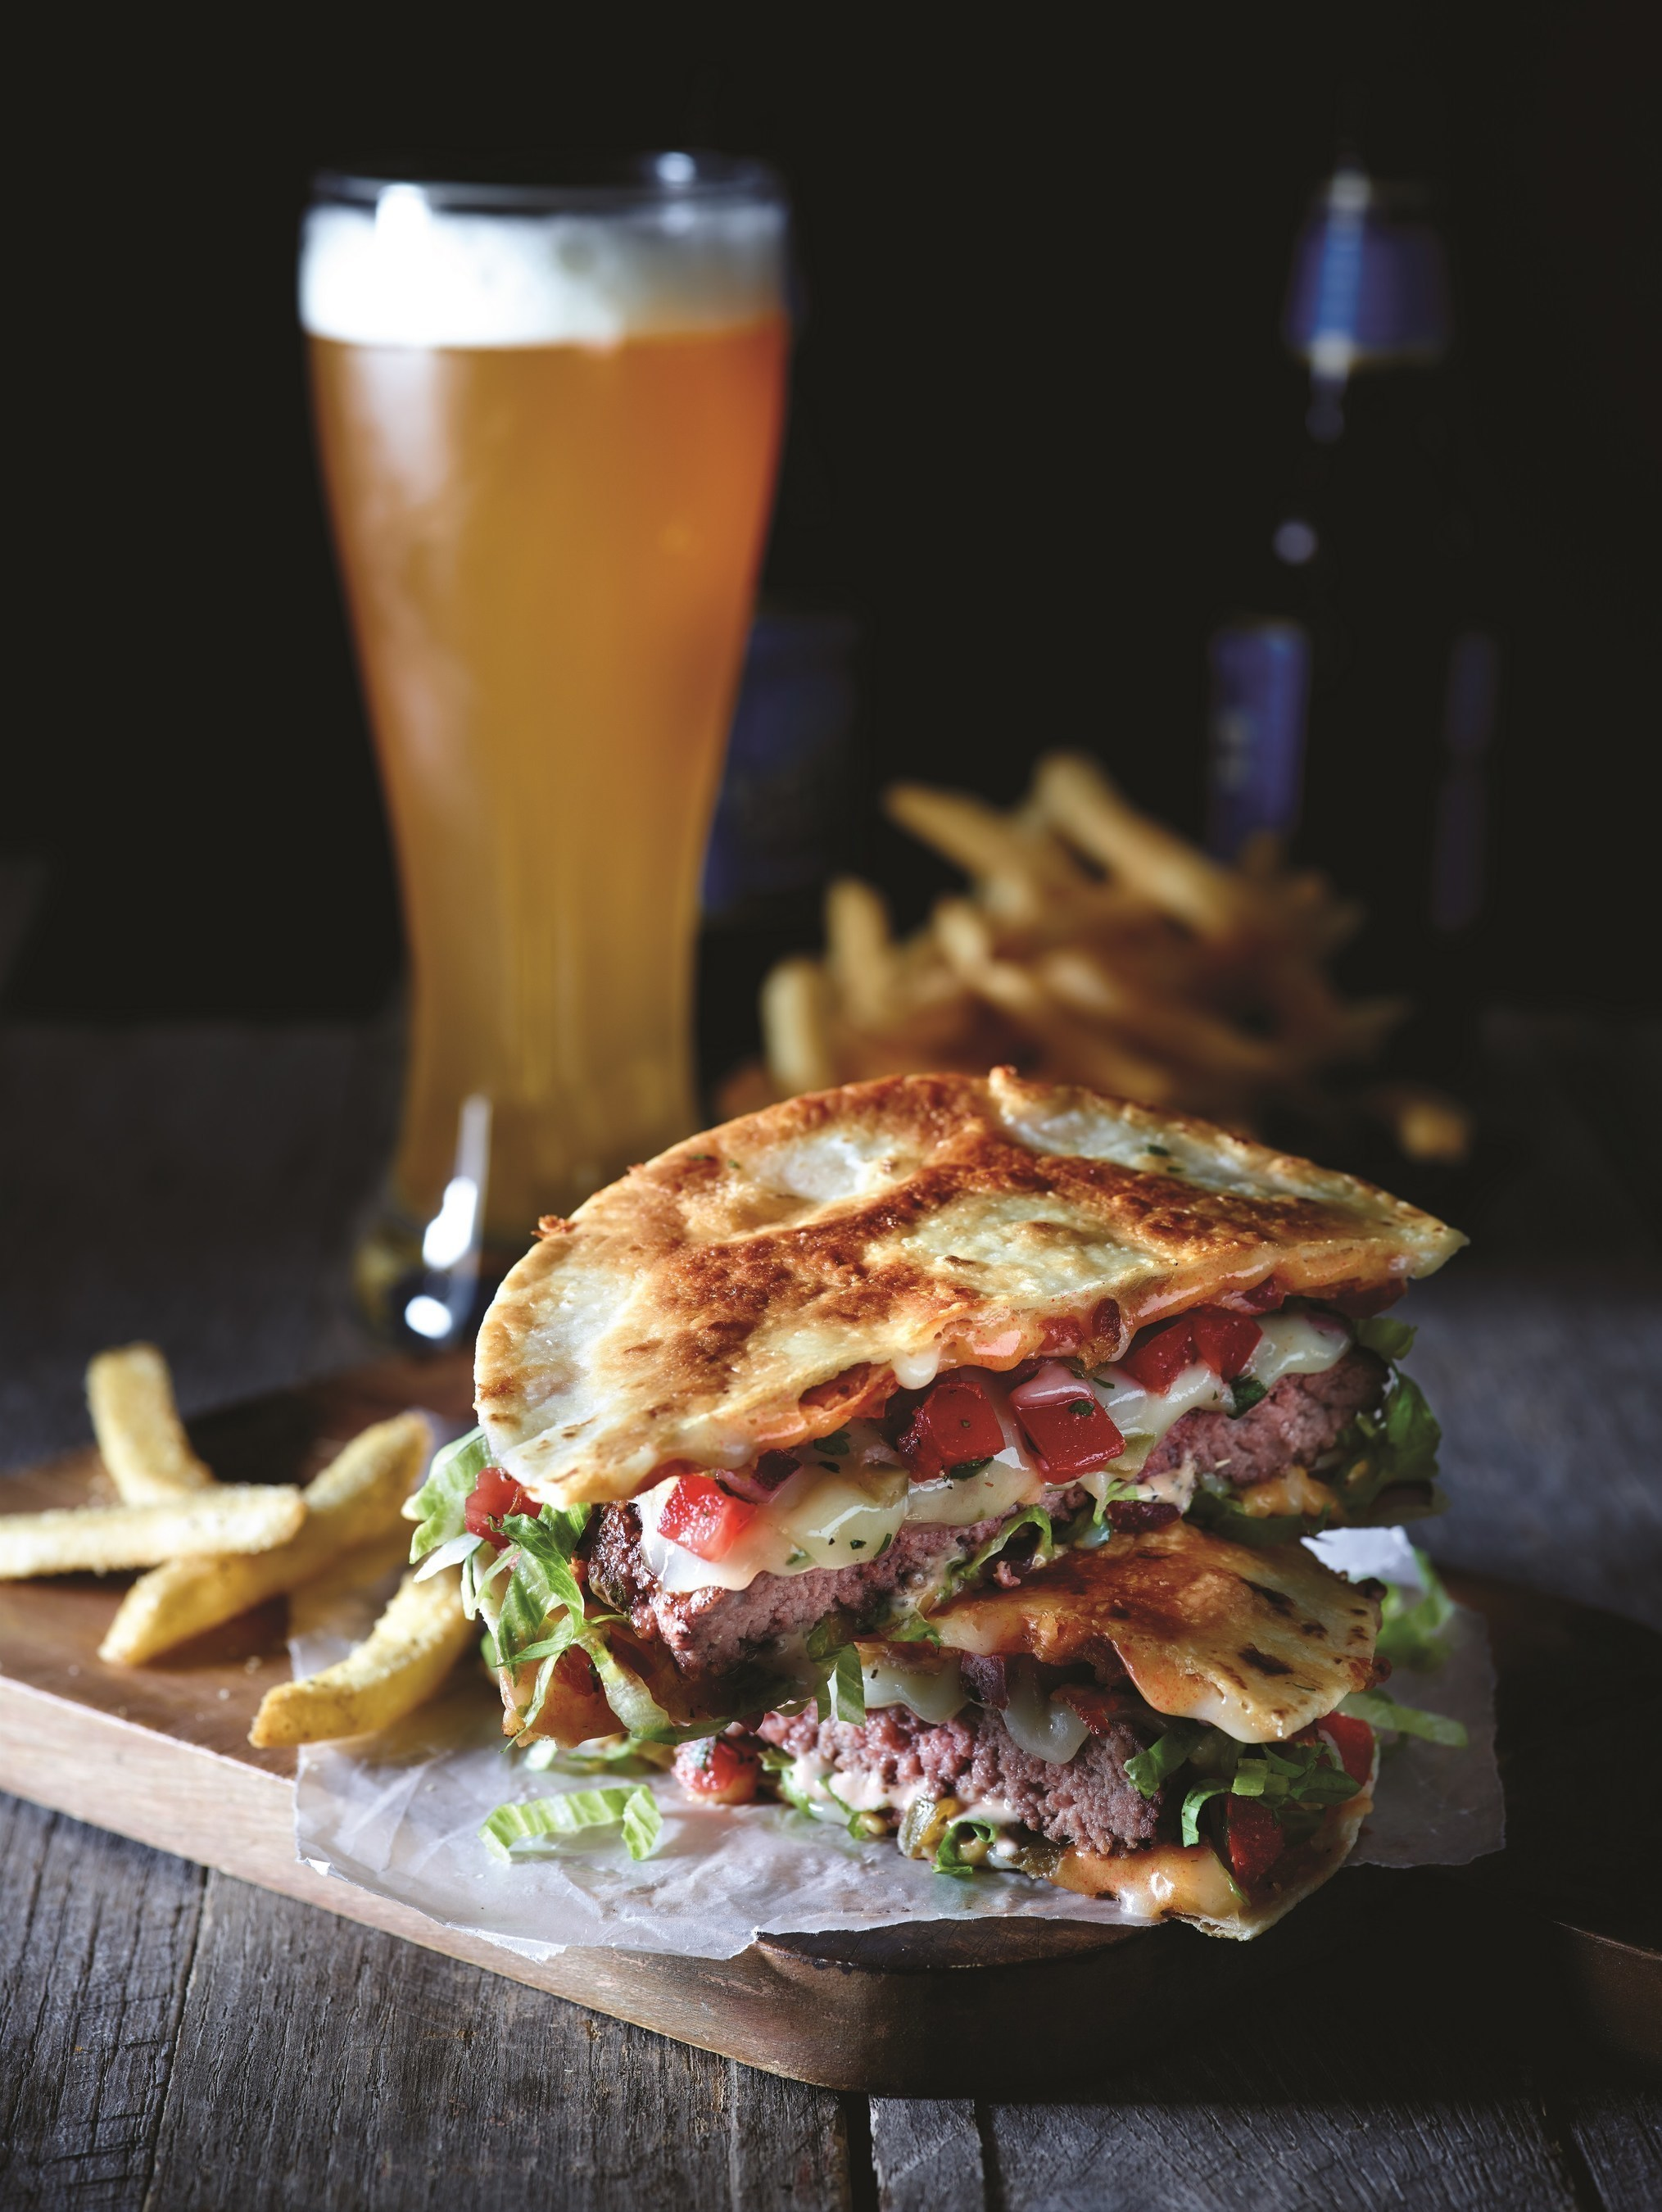 The Quesadilla Burger - cooked with fresh, never frozen, USDA inspected ground chuck and freshly prepared Pico de Gallo - is now available as part of the Applebee's 2 for $20 menu.